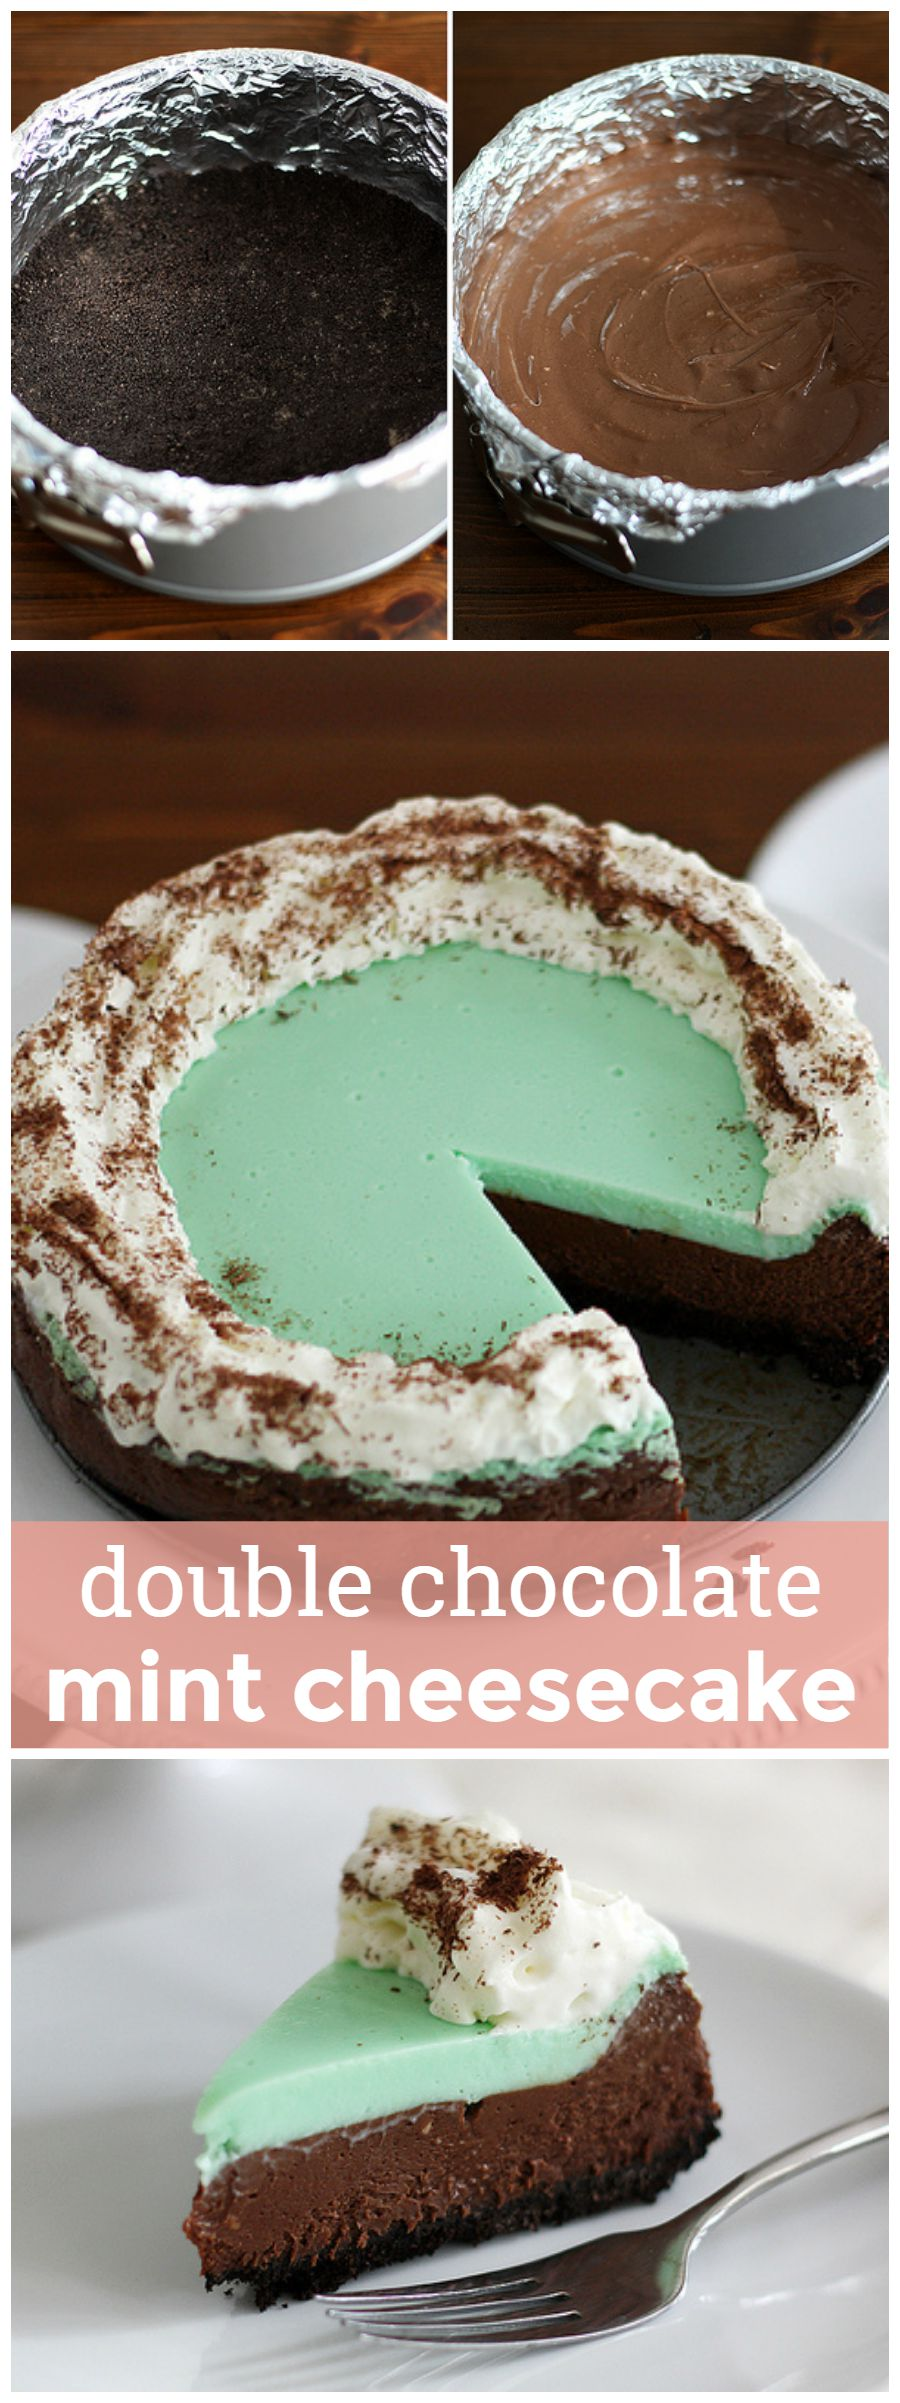 Double Chocolate Mint Cheesecake -- A decadent and delicious double-layer cheesecake flavored with chocolate and mint. girlversusdough.com @girlversusdough